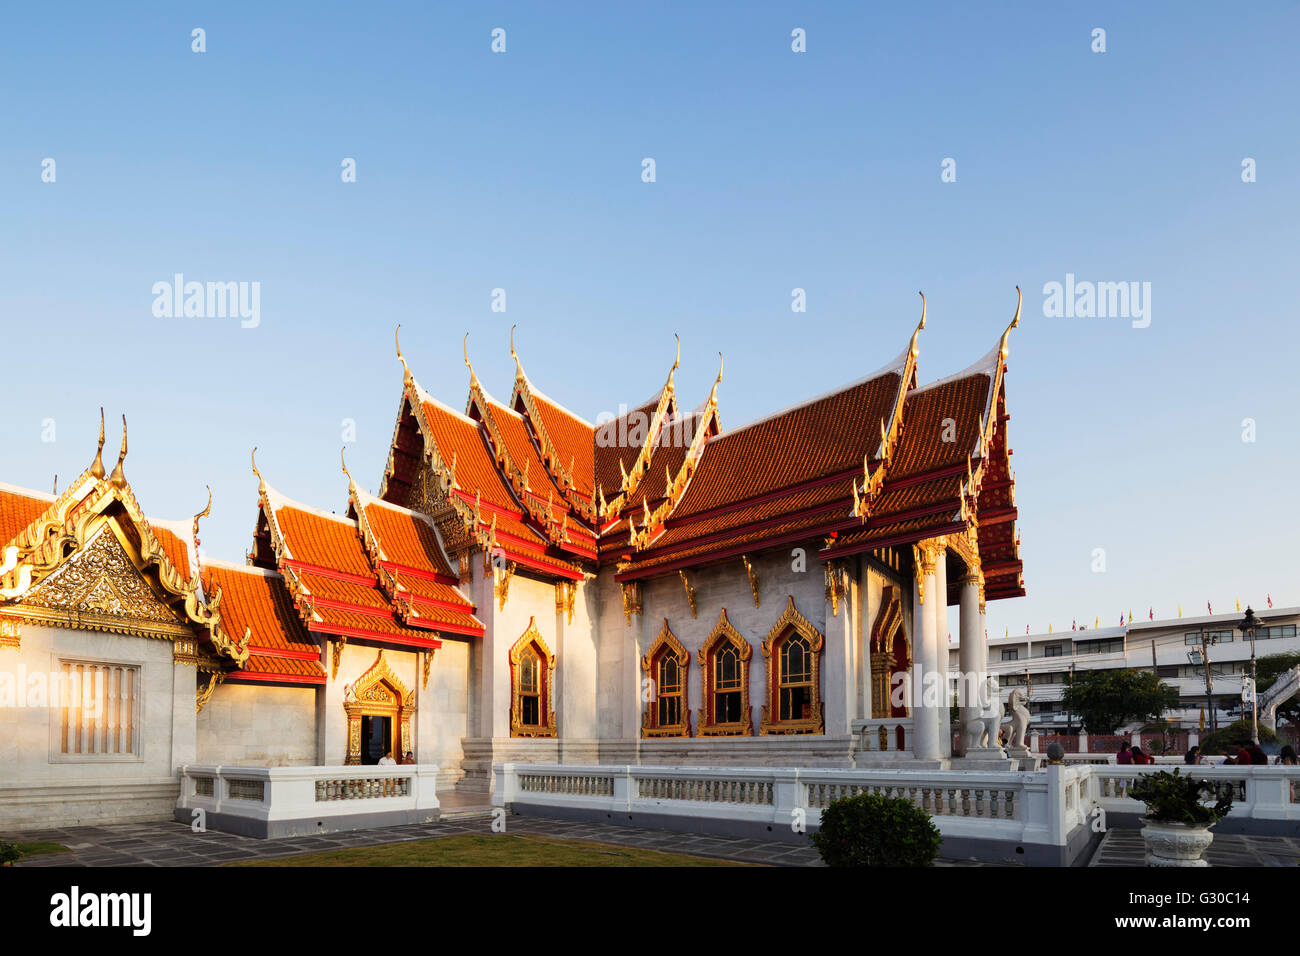 The Marble Temple (Wat Benchamabophit), Bangkok, Thailand, Southeast Asia, Asia - Stock Image